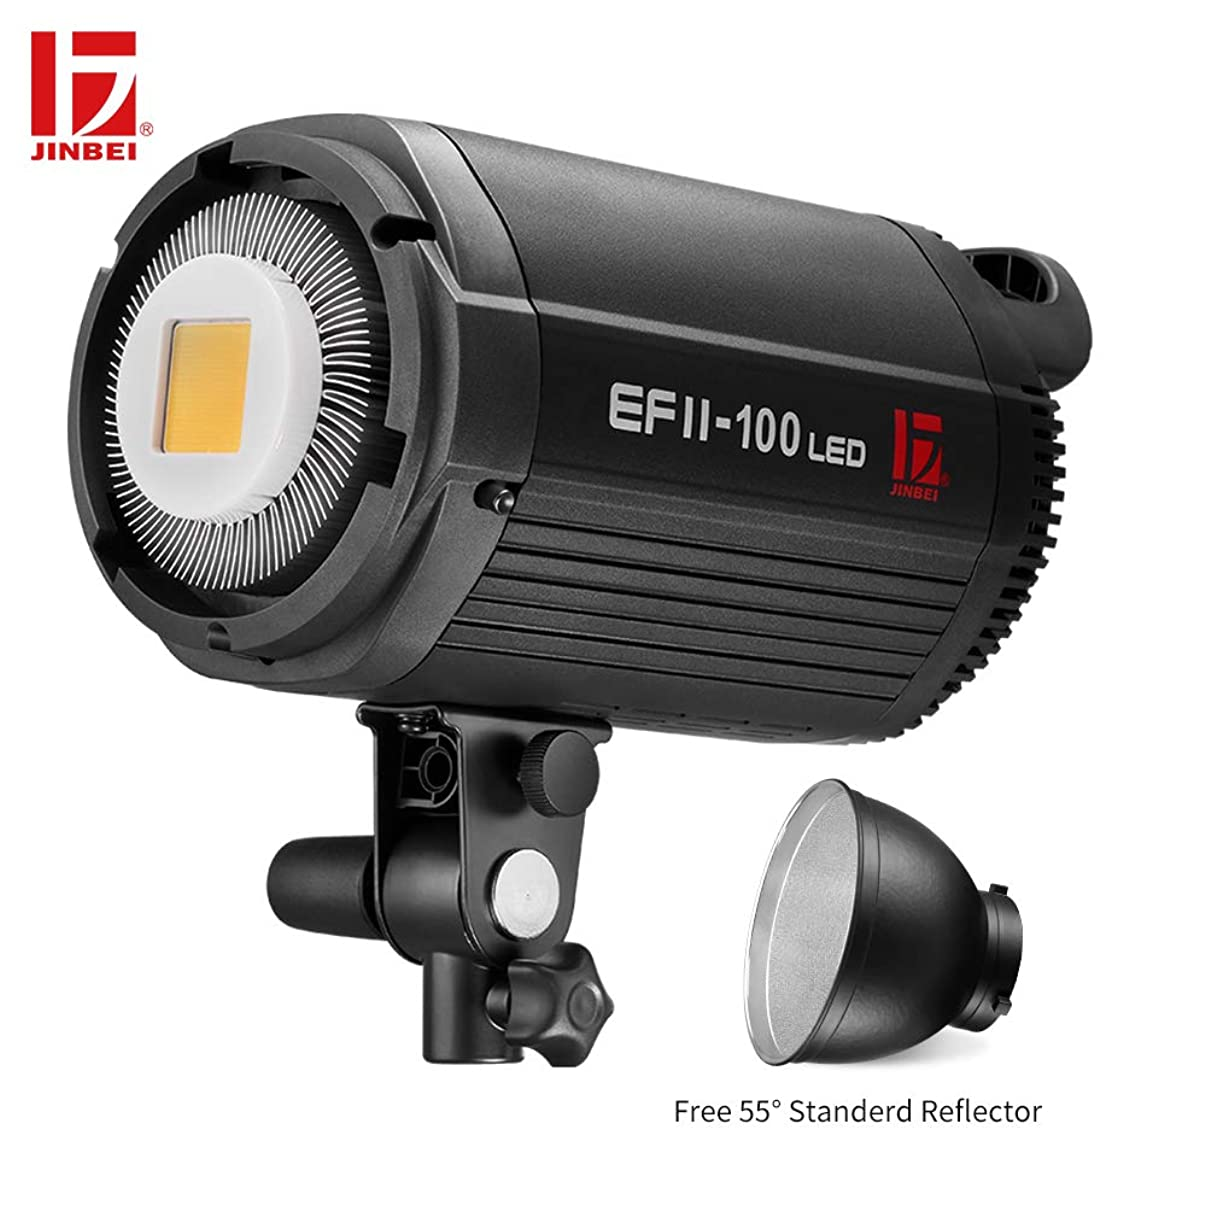 JINBEI EFII-100 100Ws Dimmable LED Portable Continuous Lamp with Bowens Mount Daylight Balanced Video Light 5500K for YouTube Vine Portrait Photography Video Lighting Studio Interview RA 95+